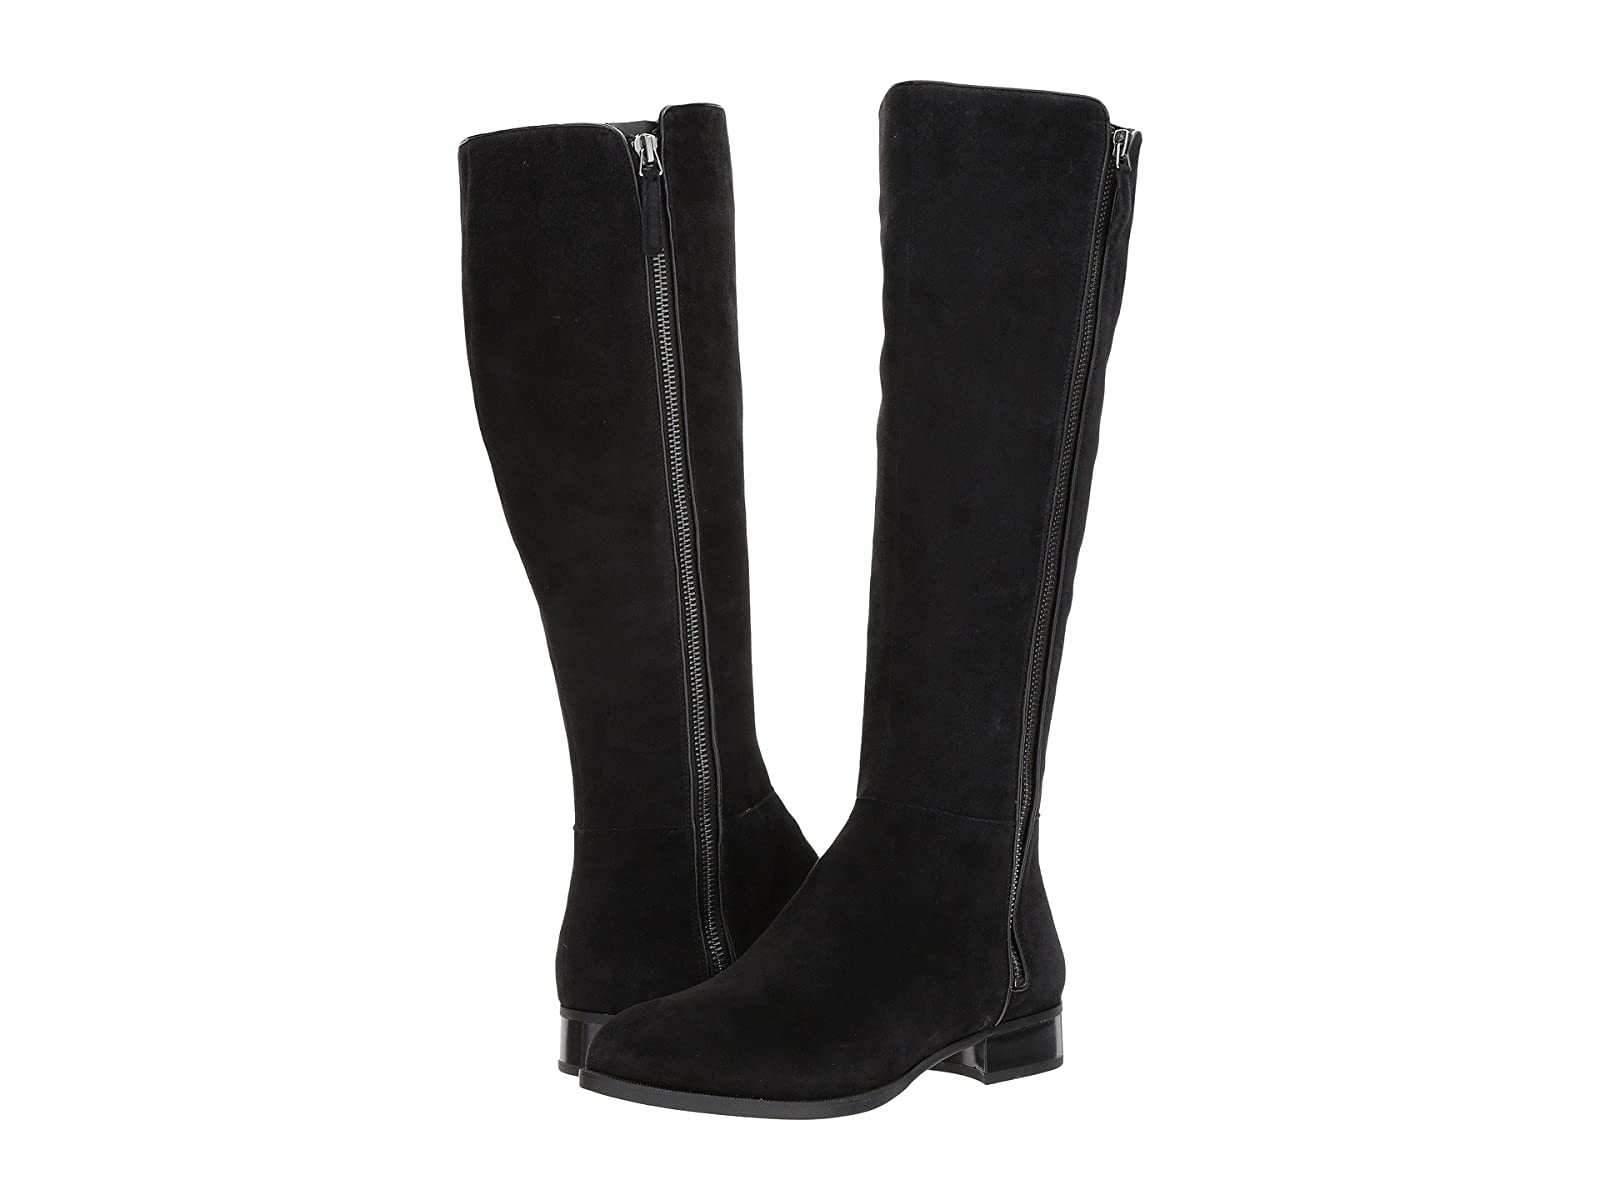 Nine West Nihari Tall BootEconomical and quality shoes